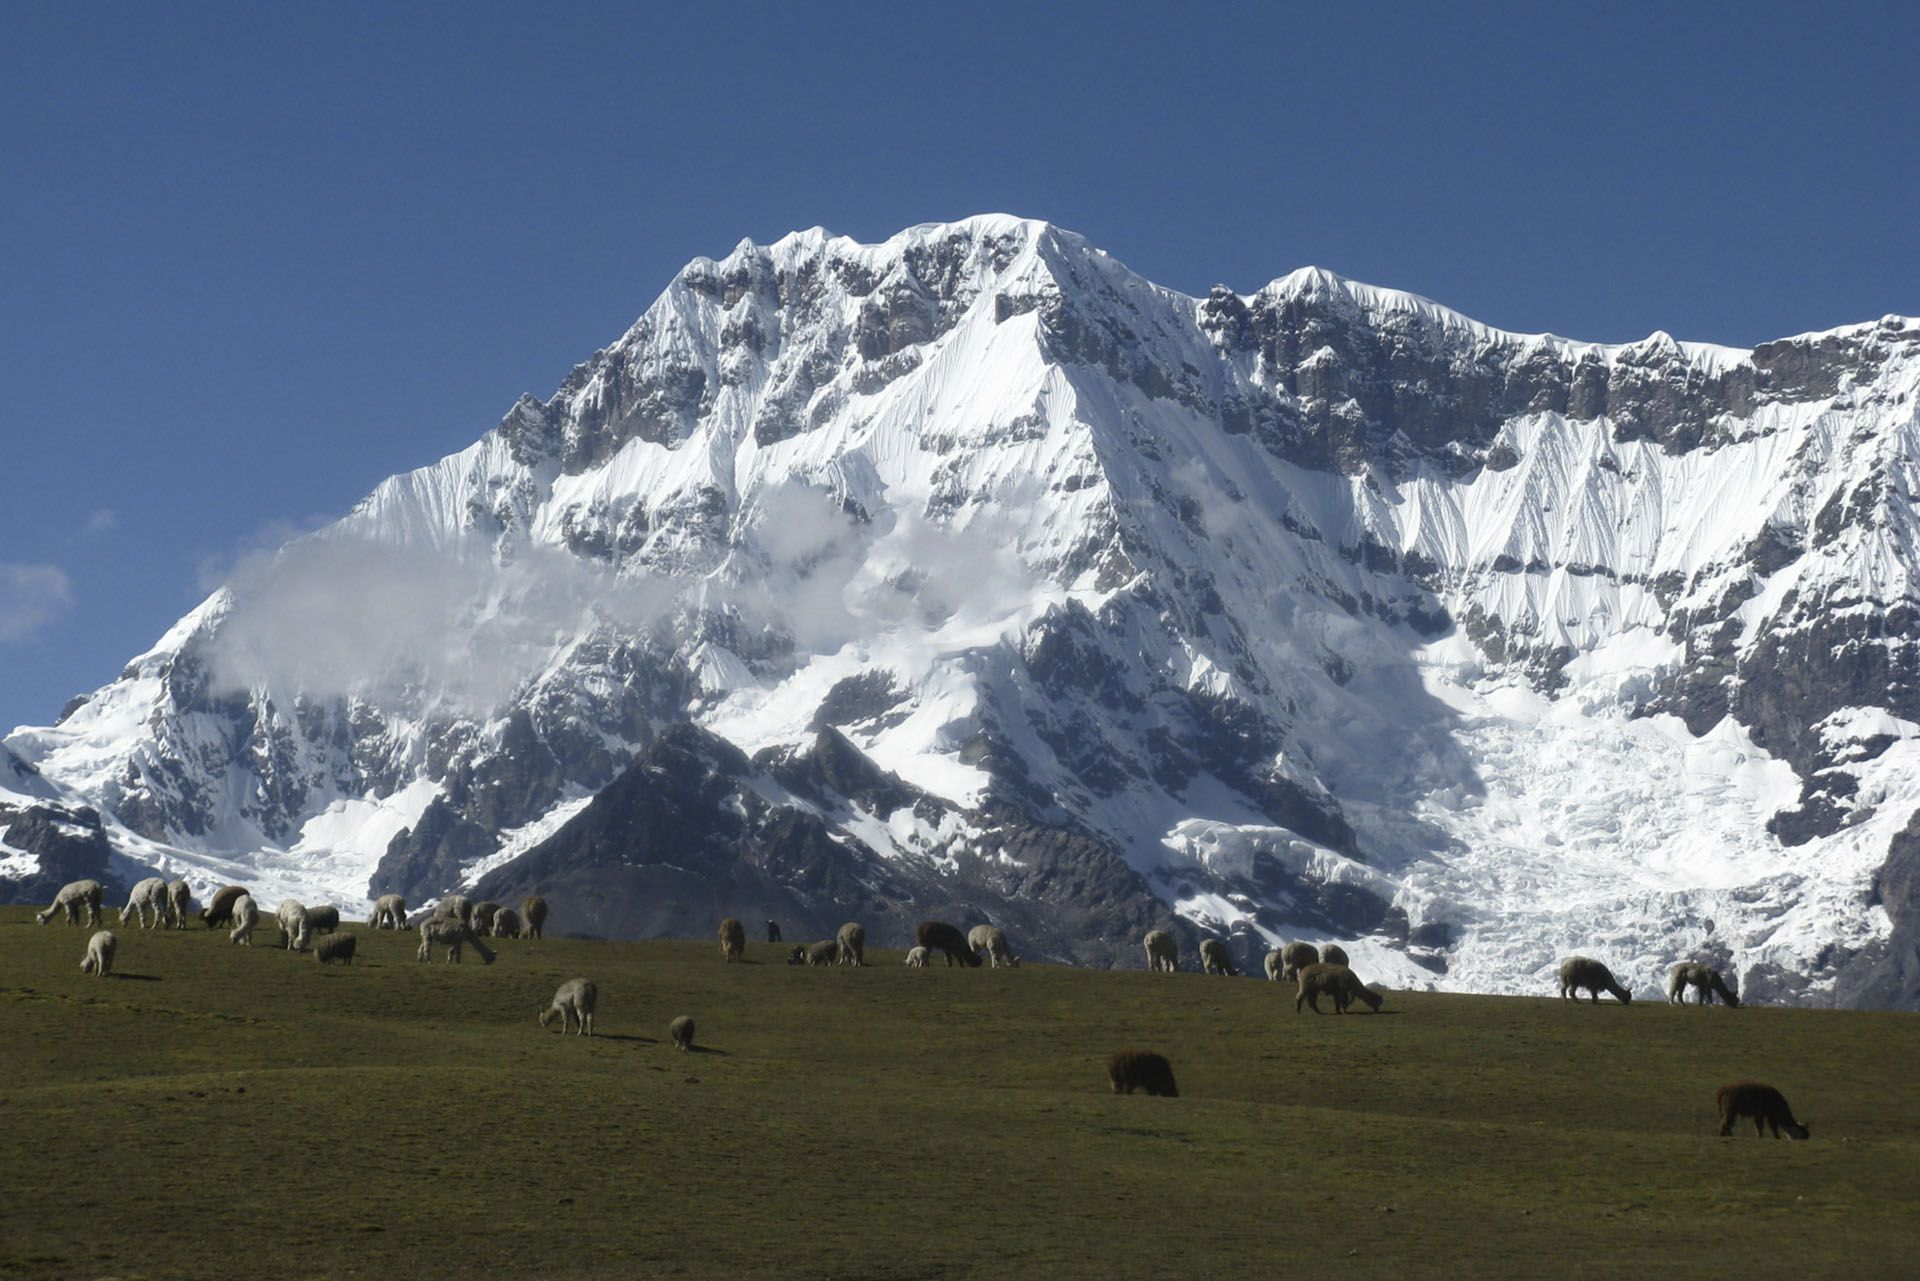 Salkantay Trek to Machu Picchu 5 days - Inca Trail Salkantay Trek